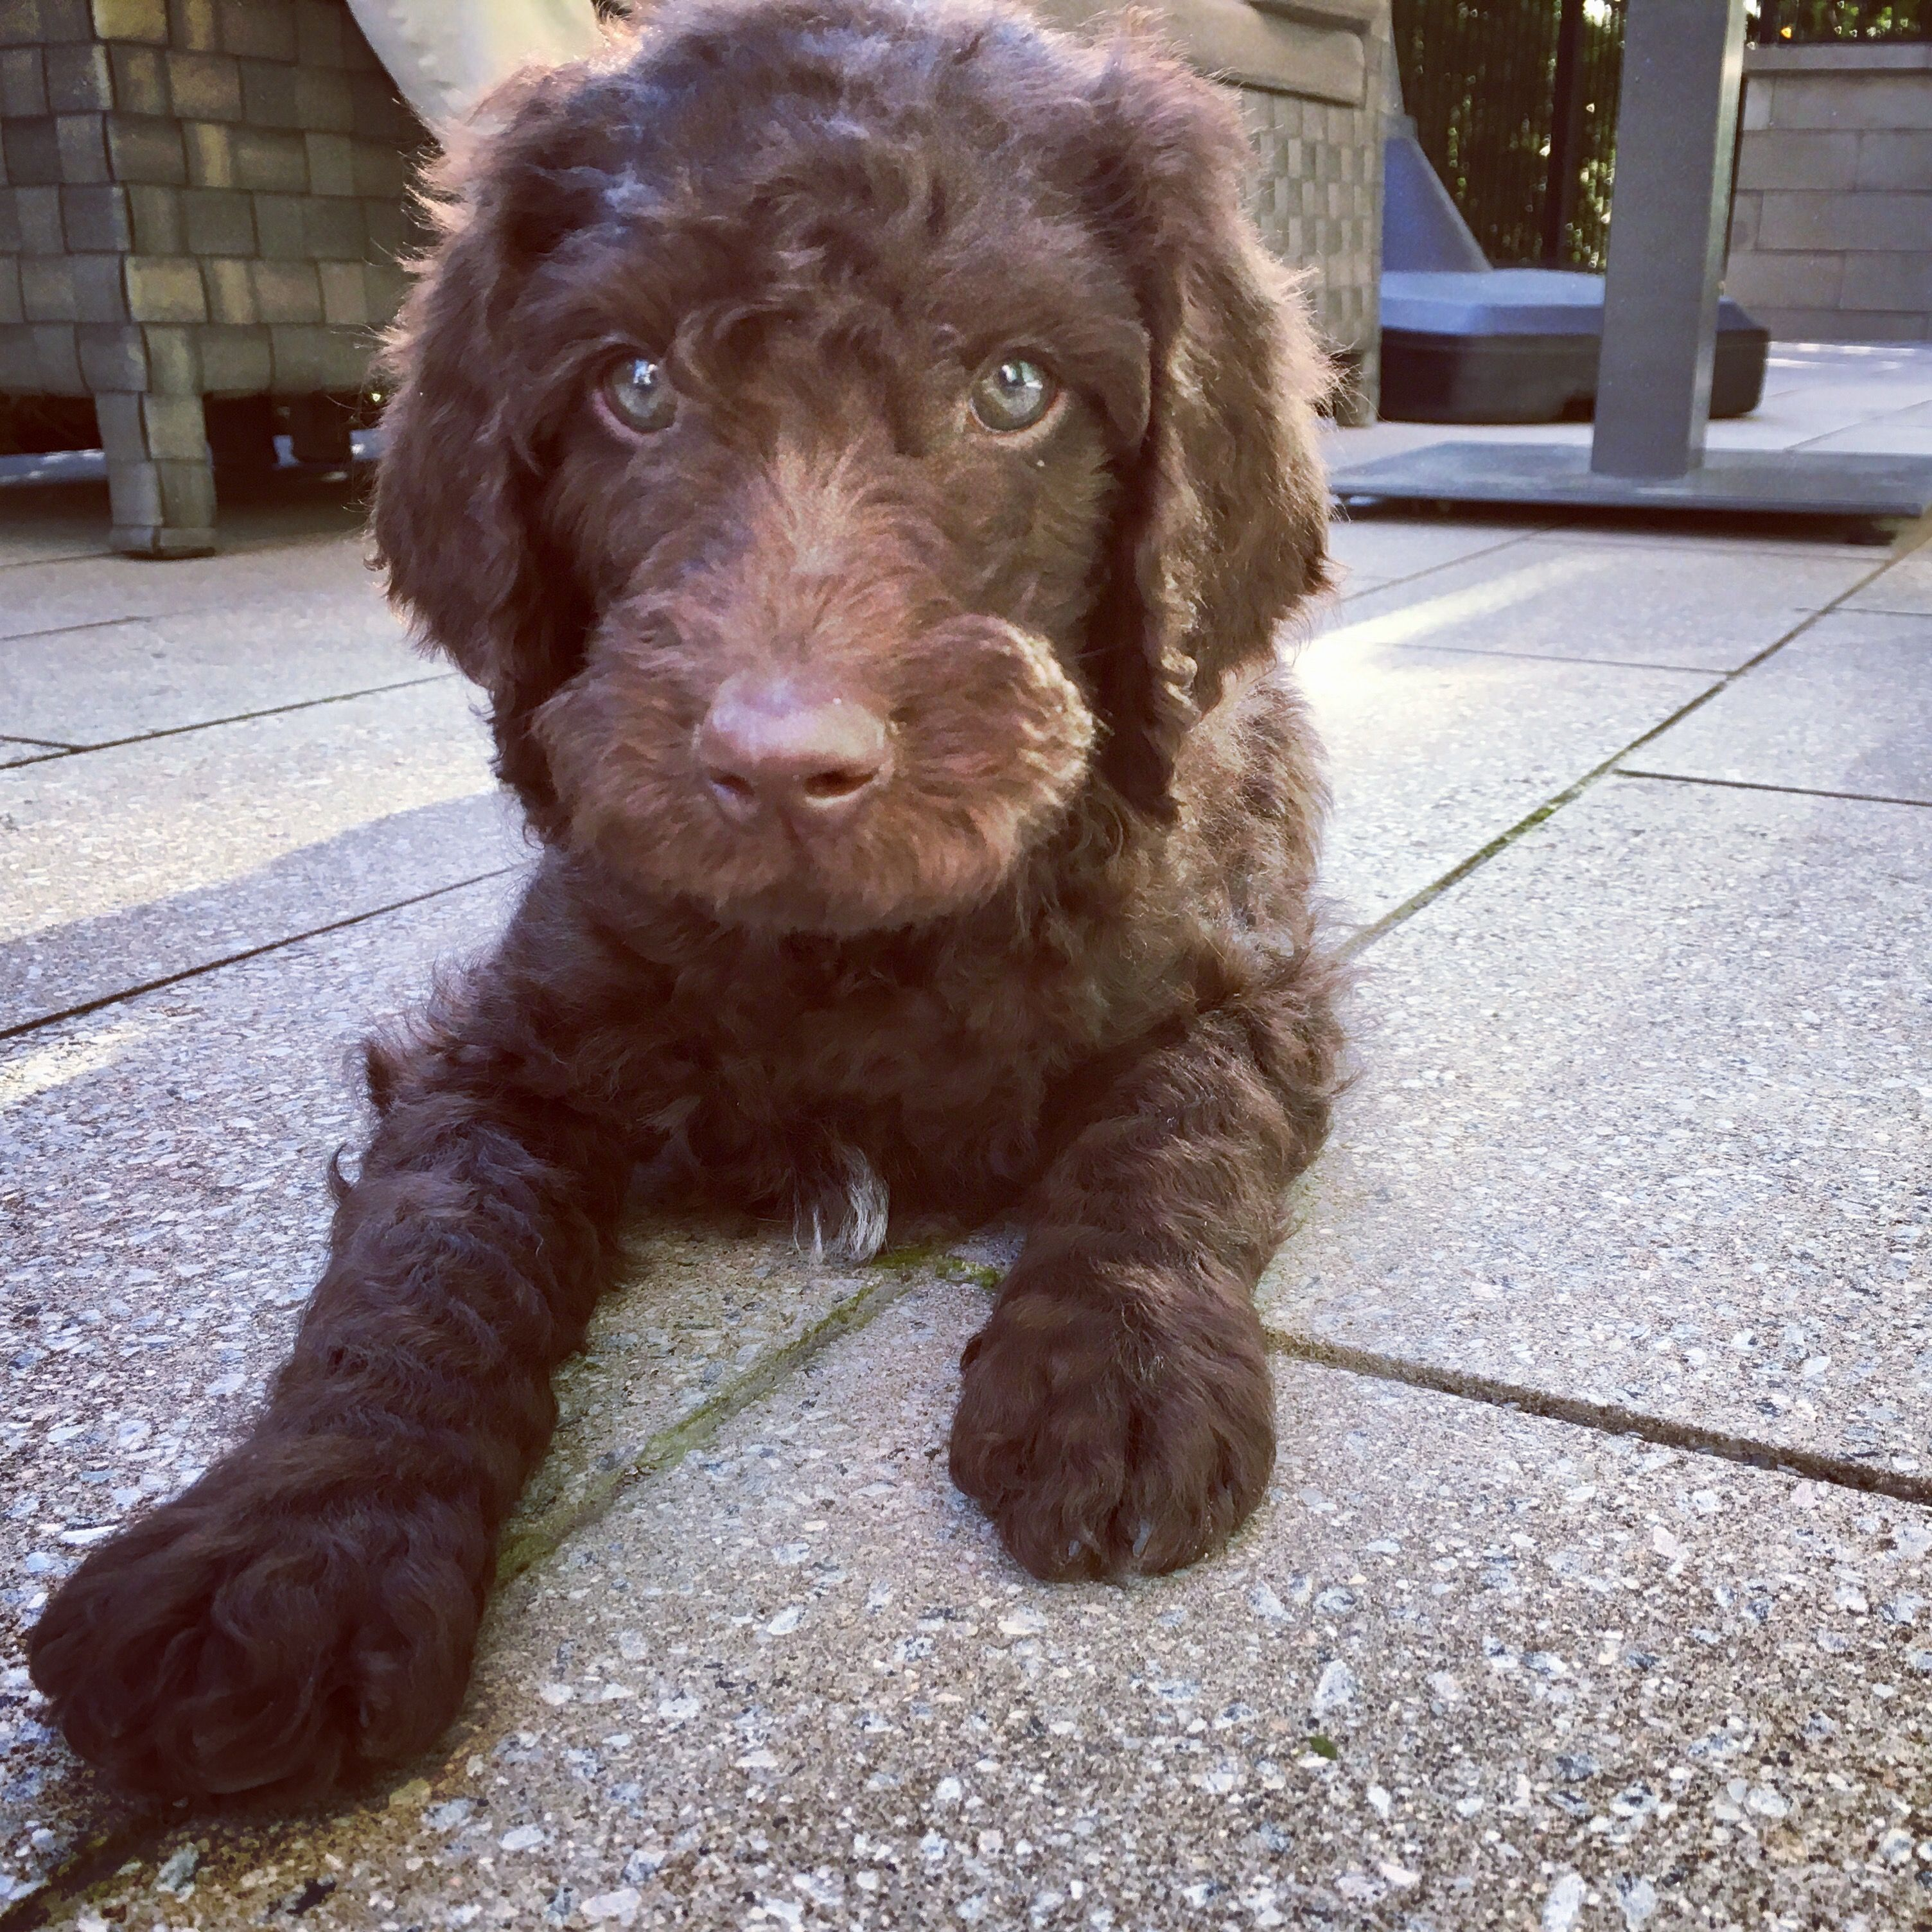 Chocolate goldendoodle. Sweetest puppy in the hole wide